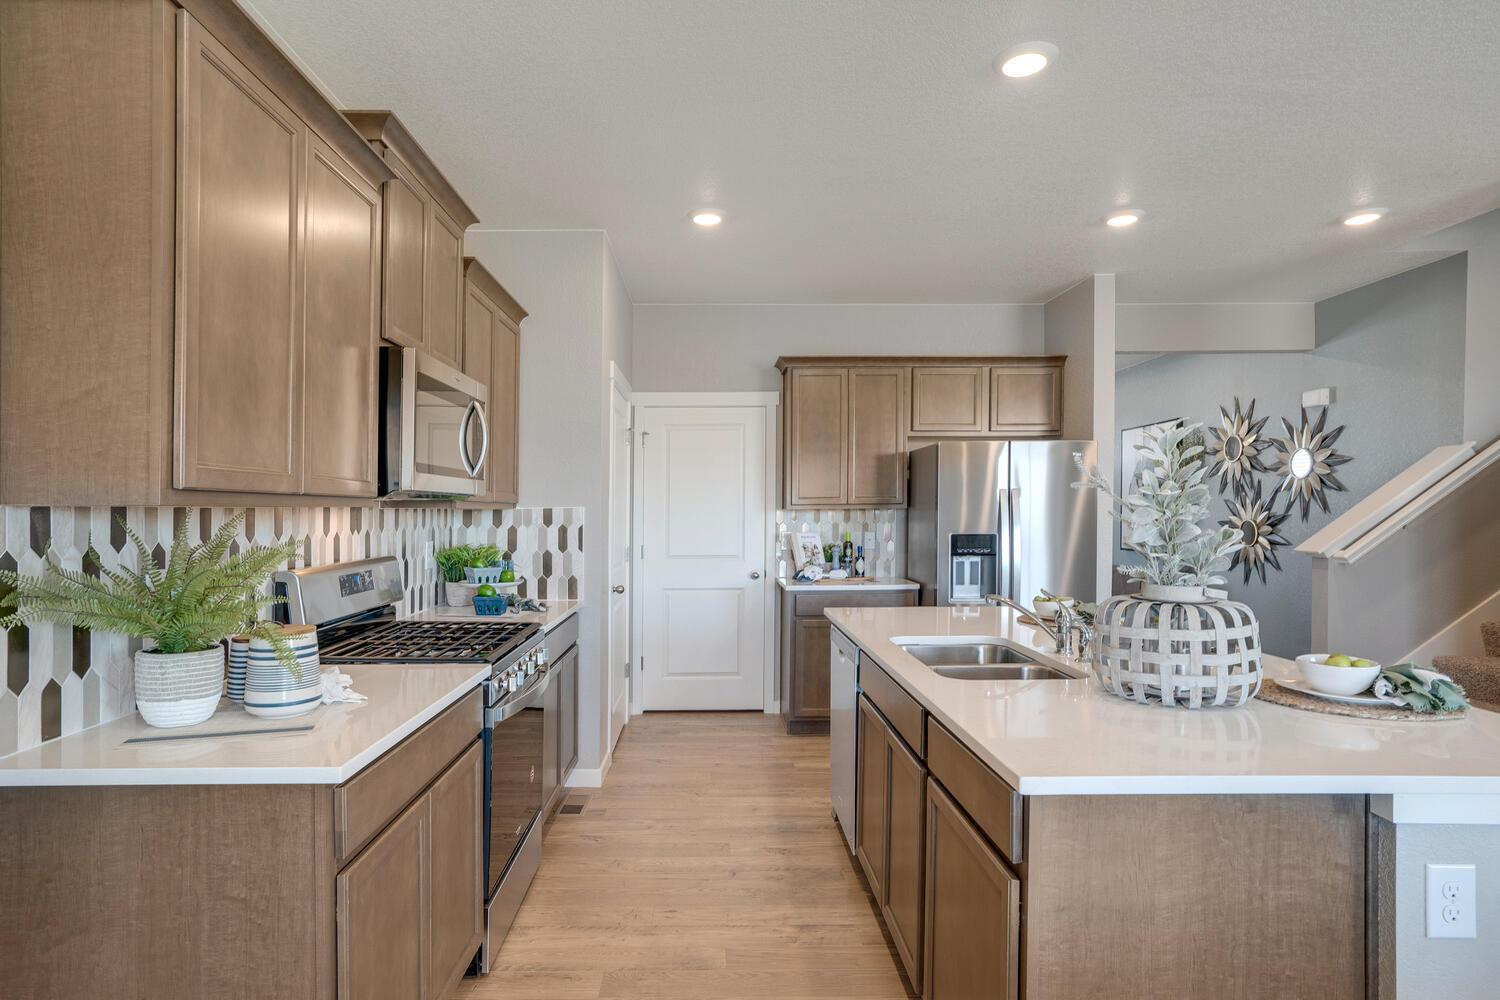 Kitchen featured in the HENLEY By D.R. Horton in Greeley, CO